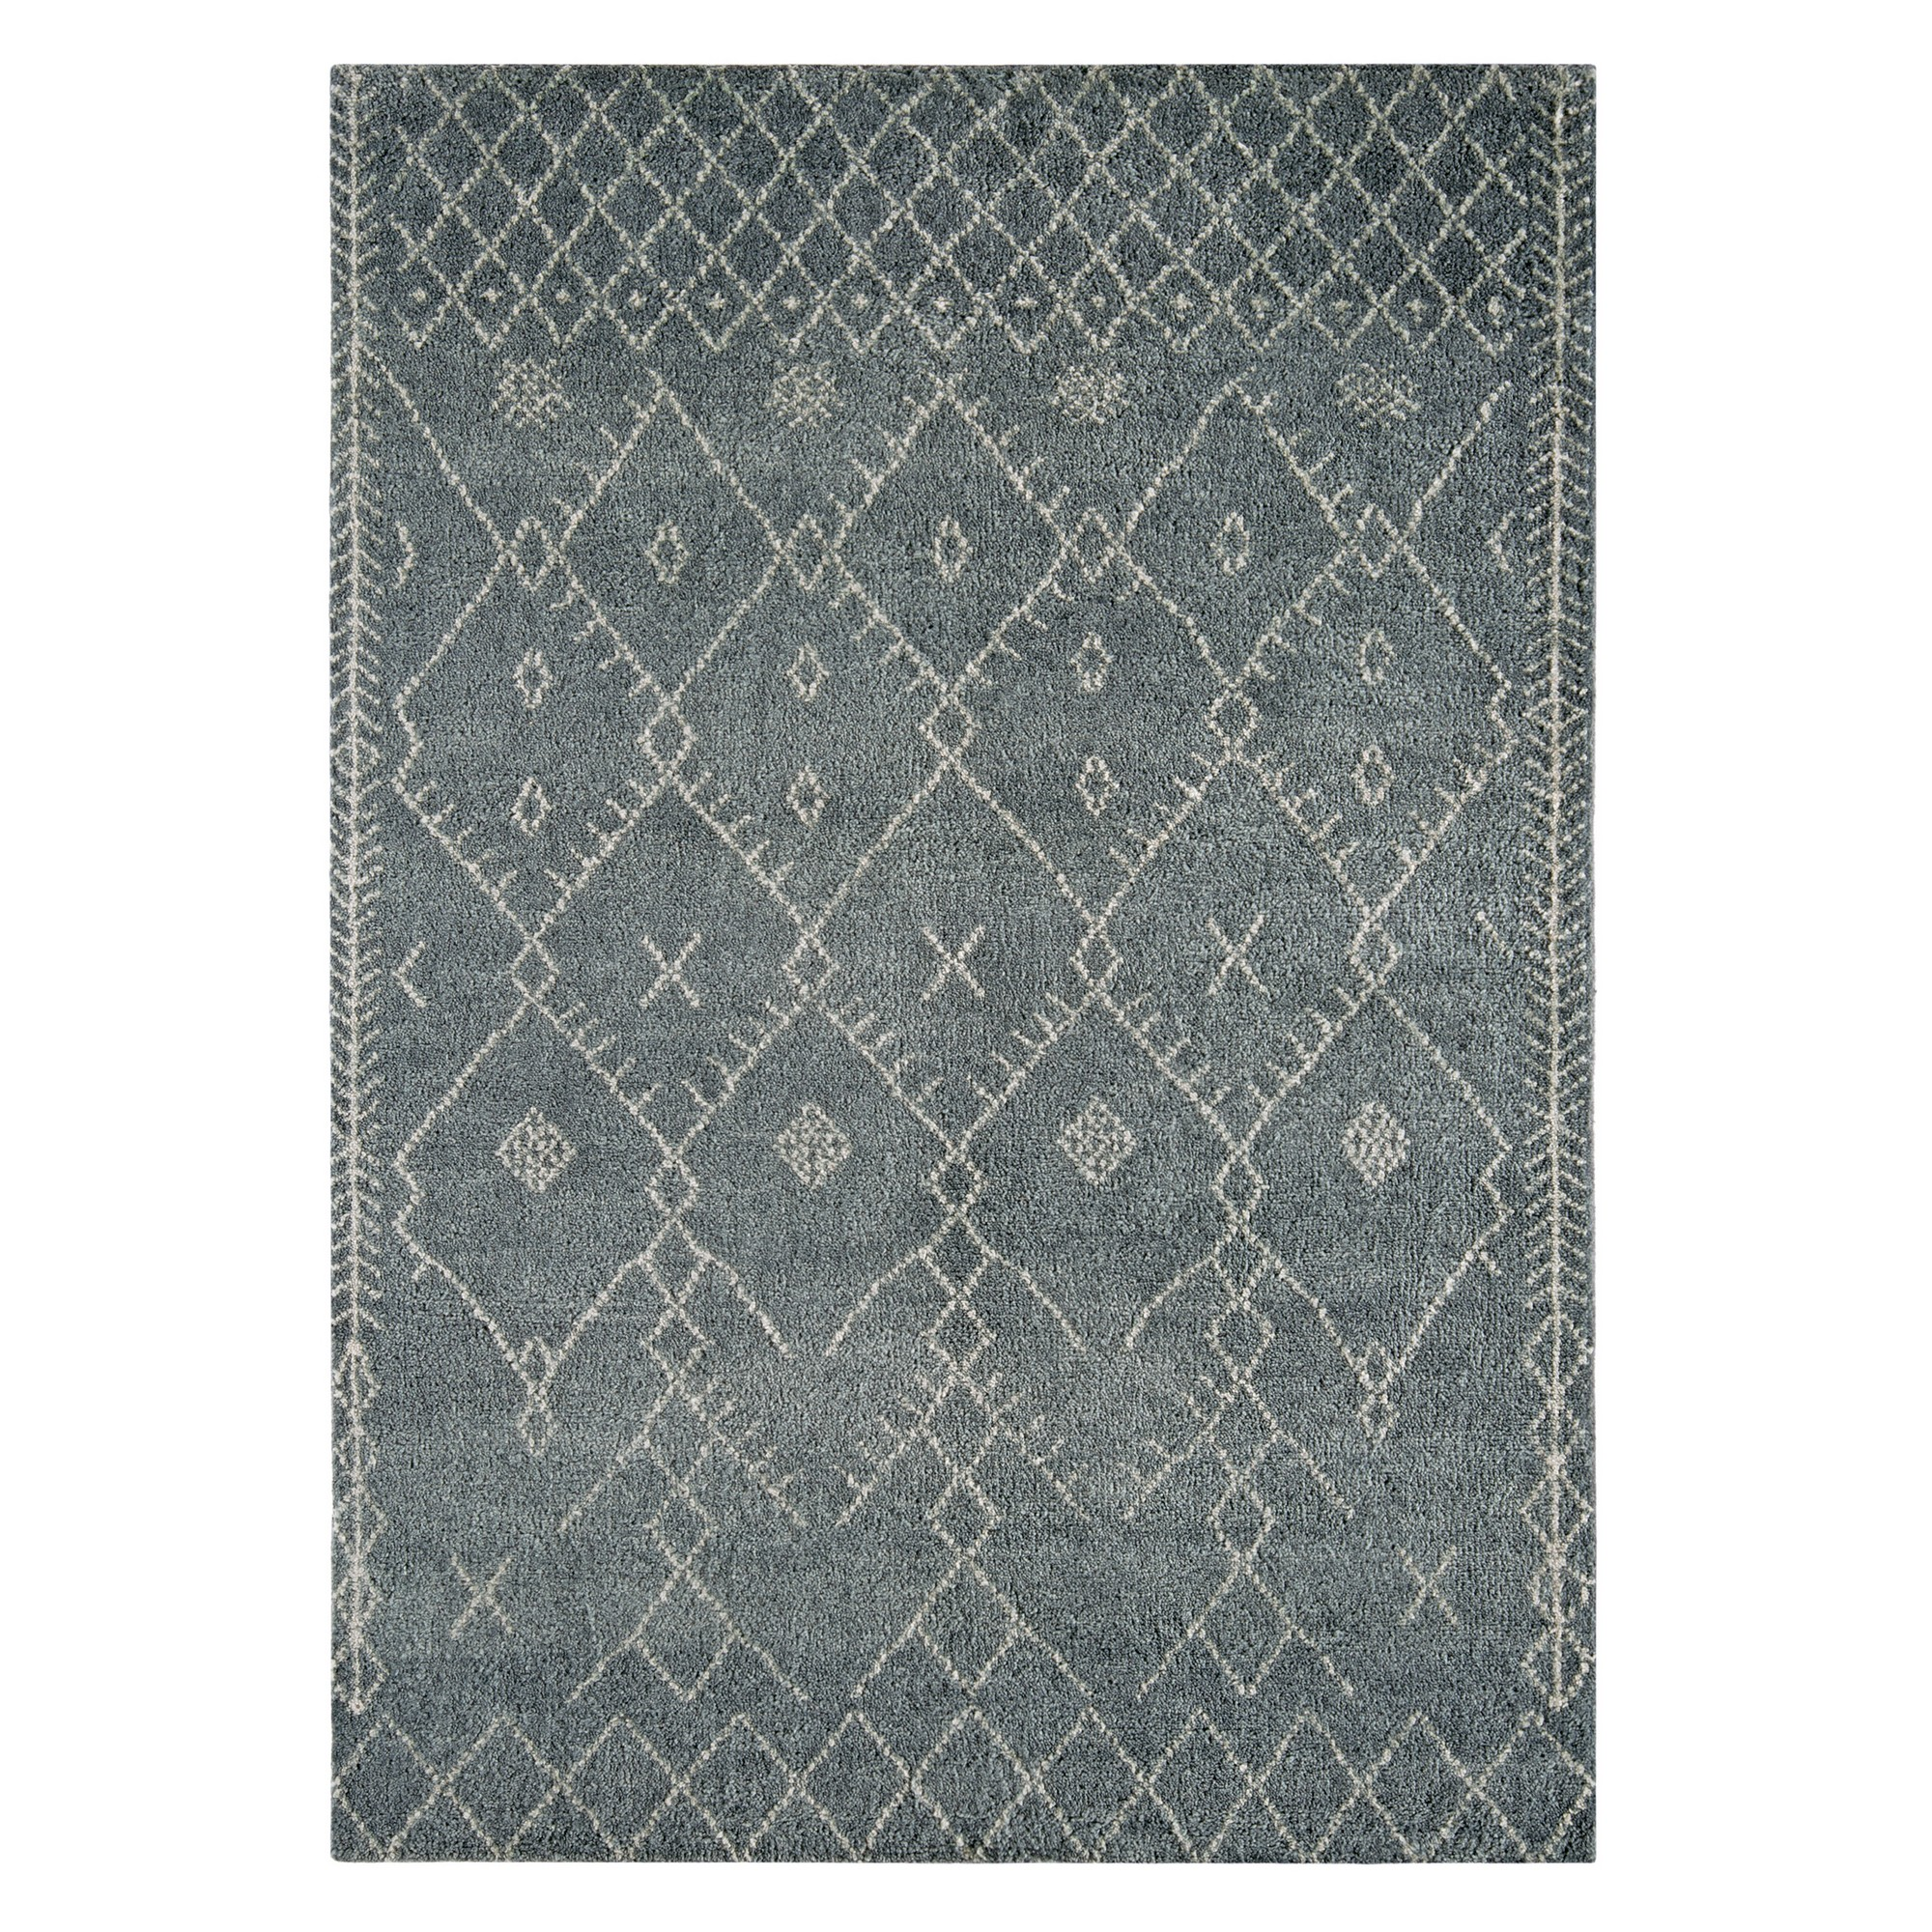 Amira Rugs AM002